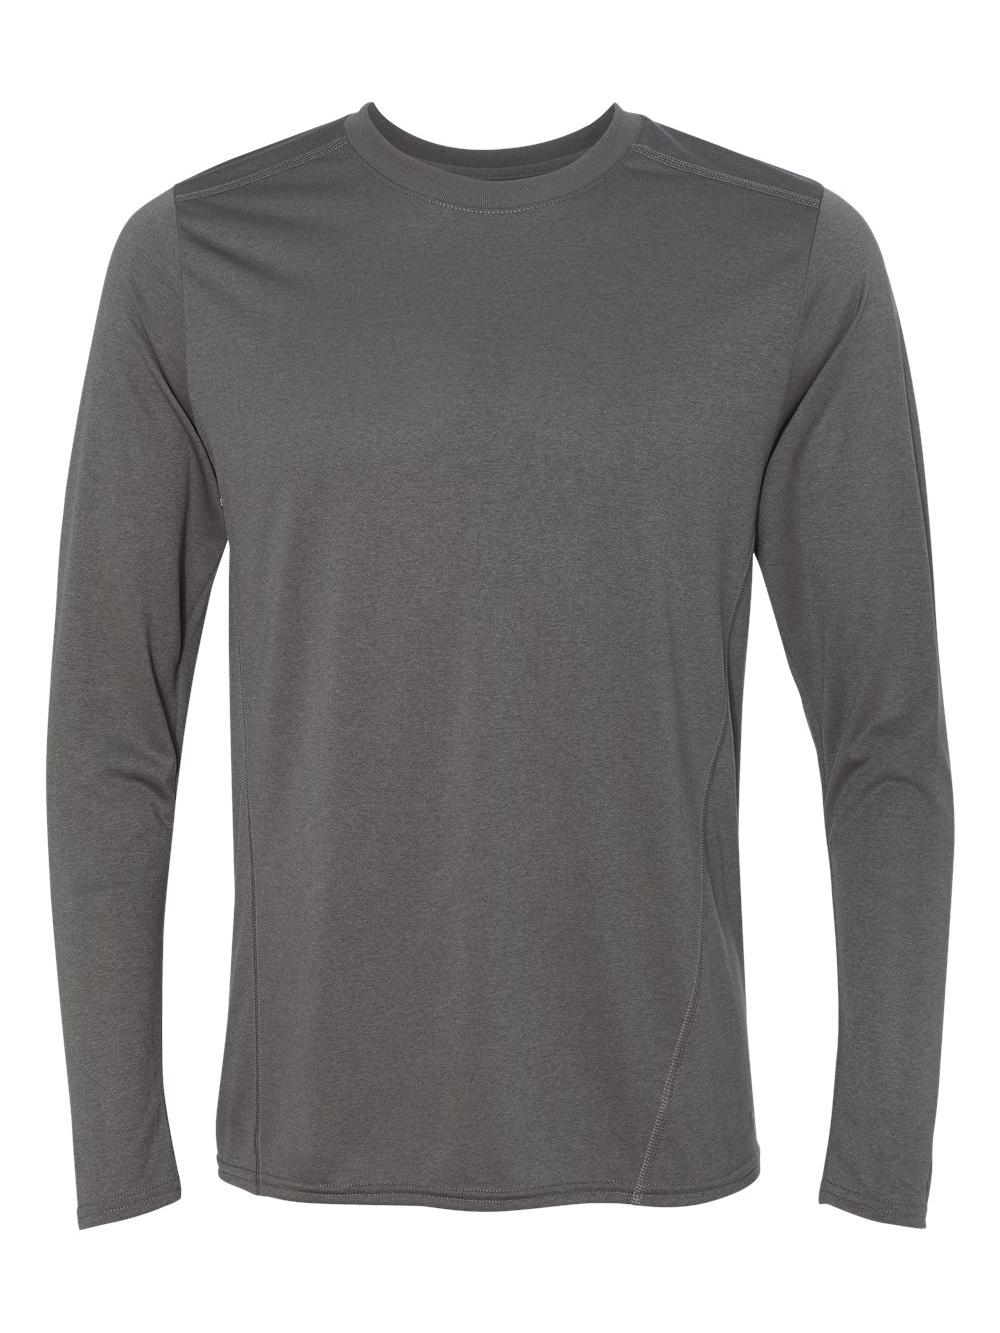 Gildan-Tech-Performance-Long-Sleeve-T-Shirt-47400 thumbnail 9